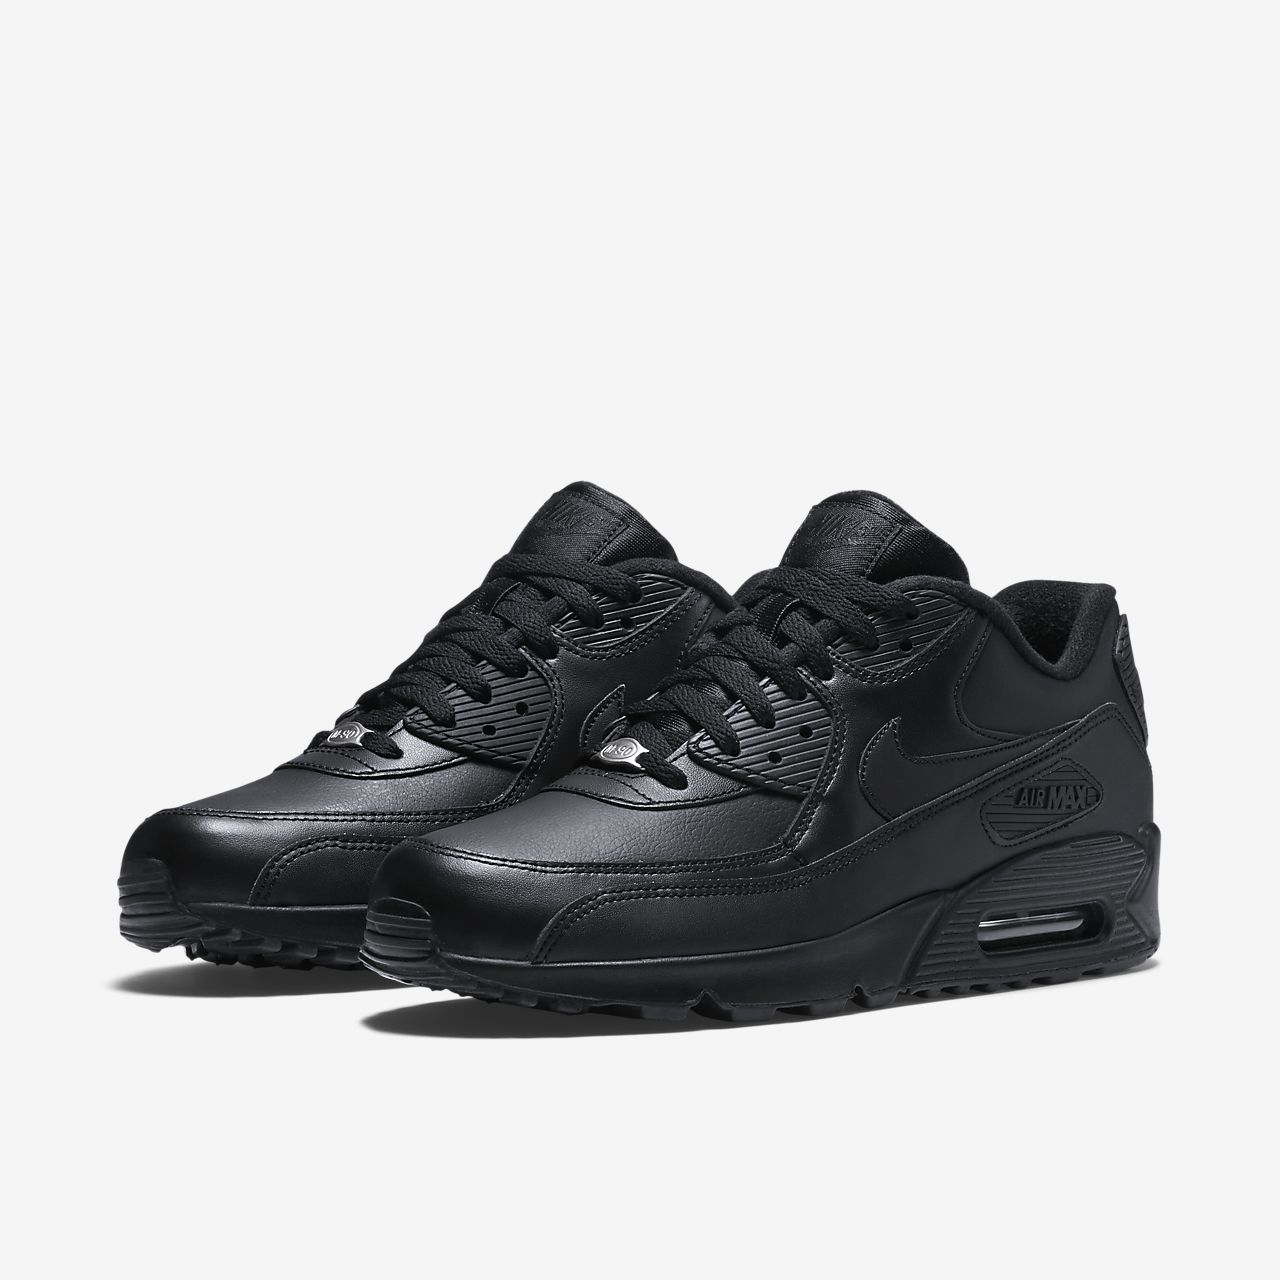 LOW PRICE Nike Air Max 90 Leather Black